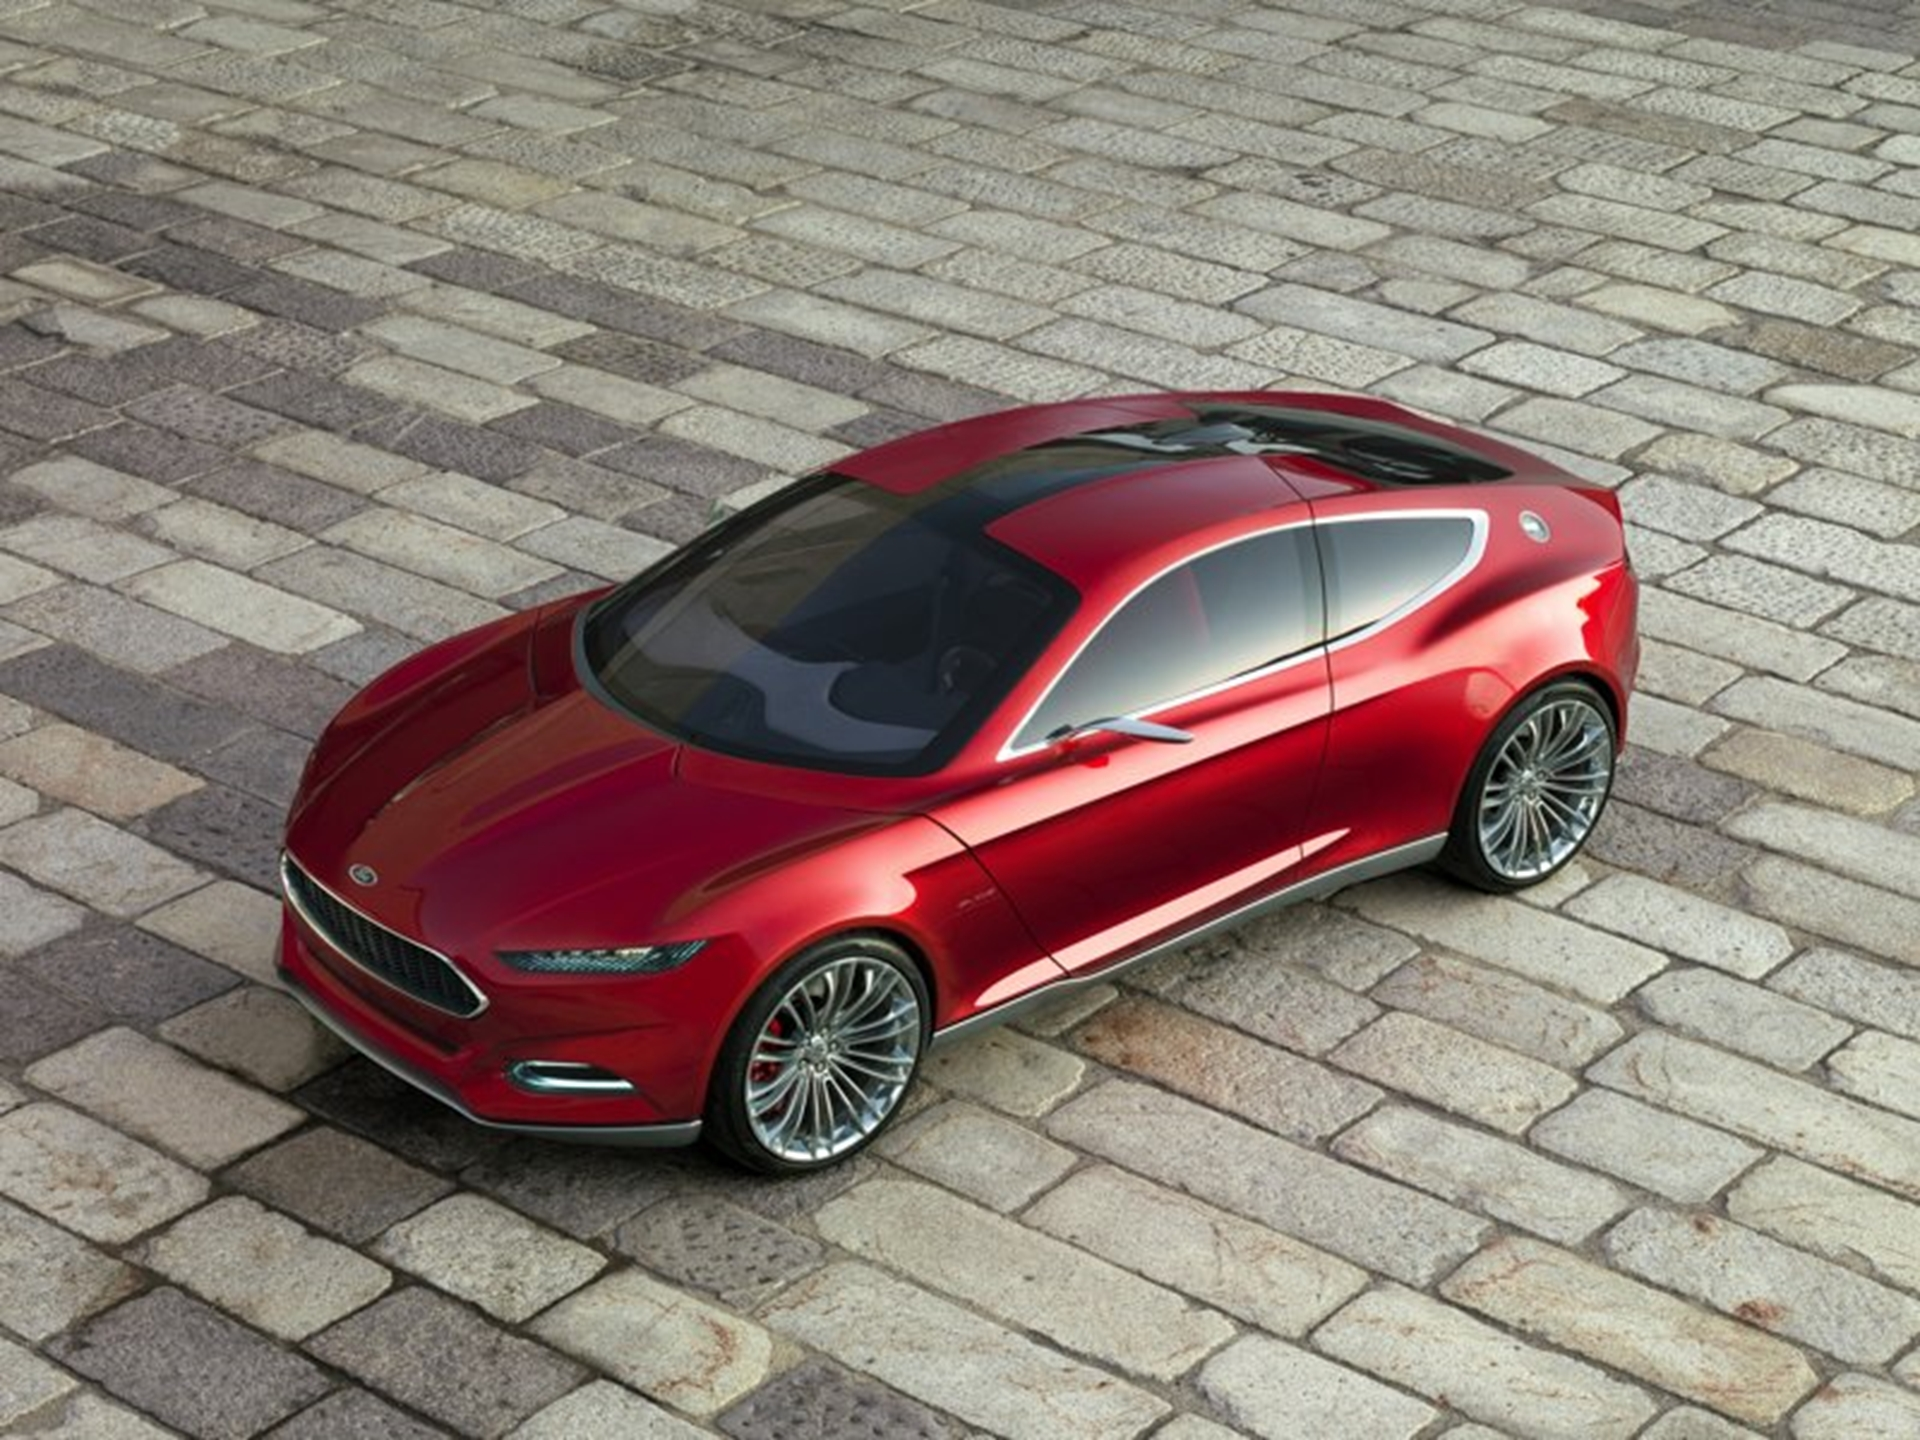 Ford Concept Car 2011 Top View